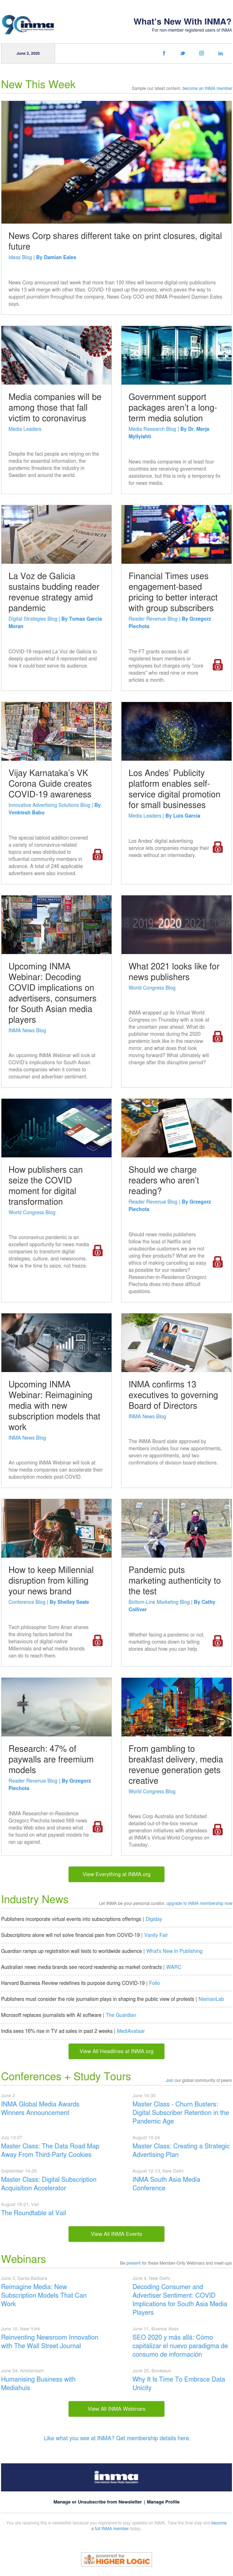 What's new at INMA: News Corp shares different take on print, digital decisions